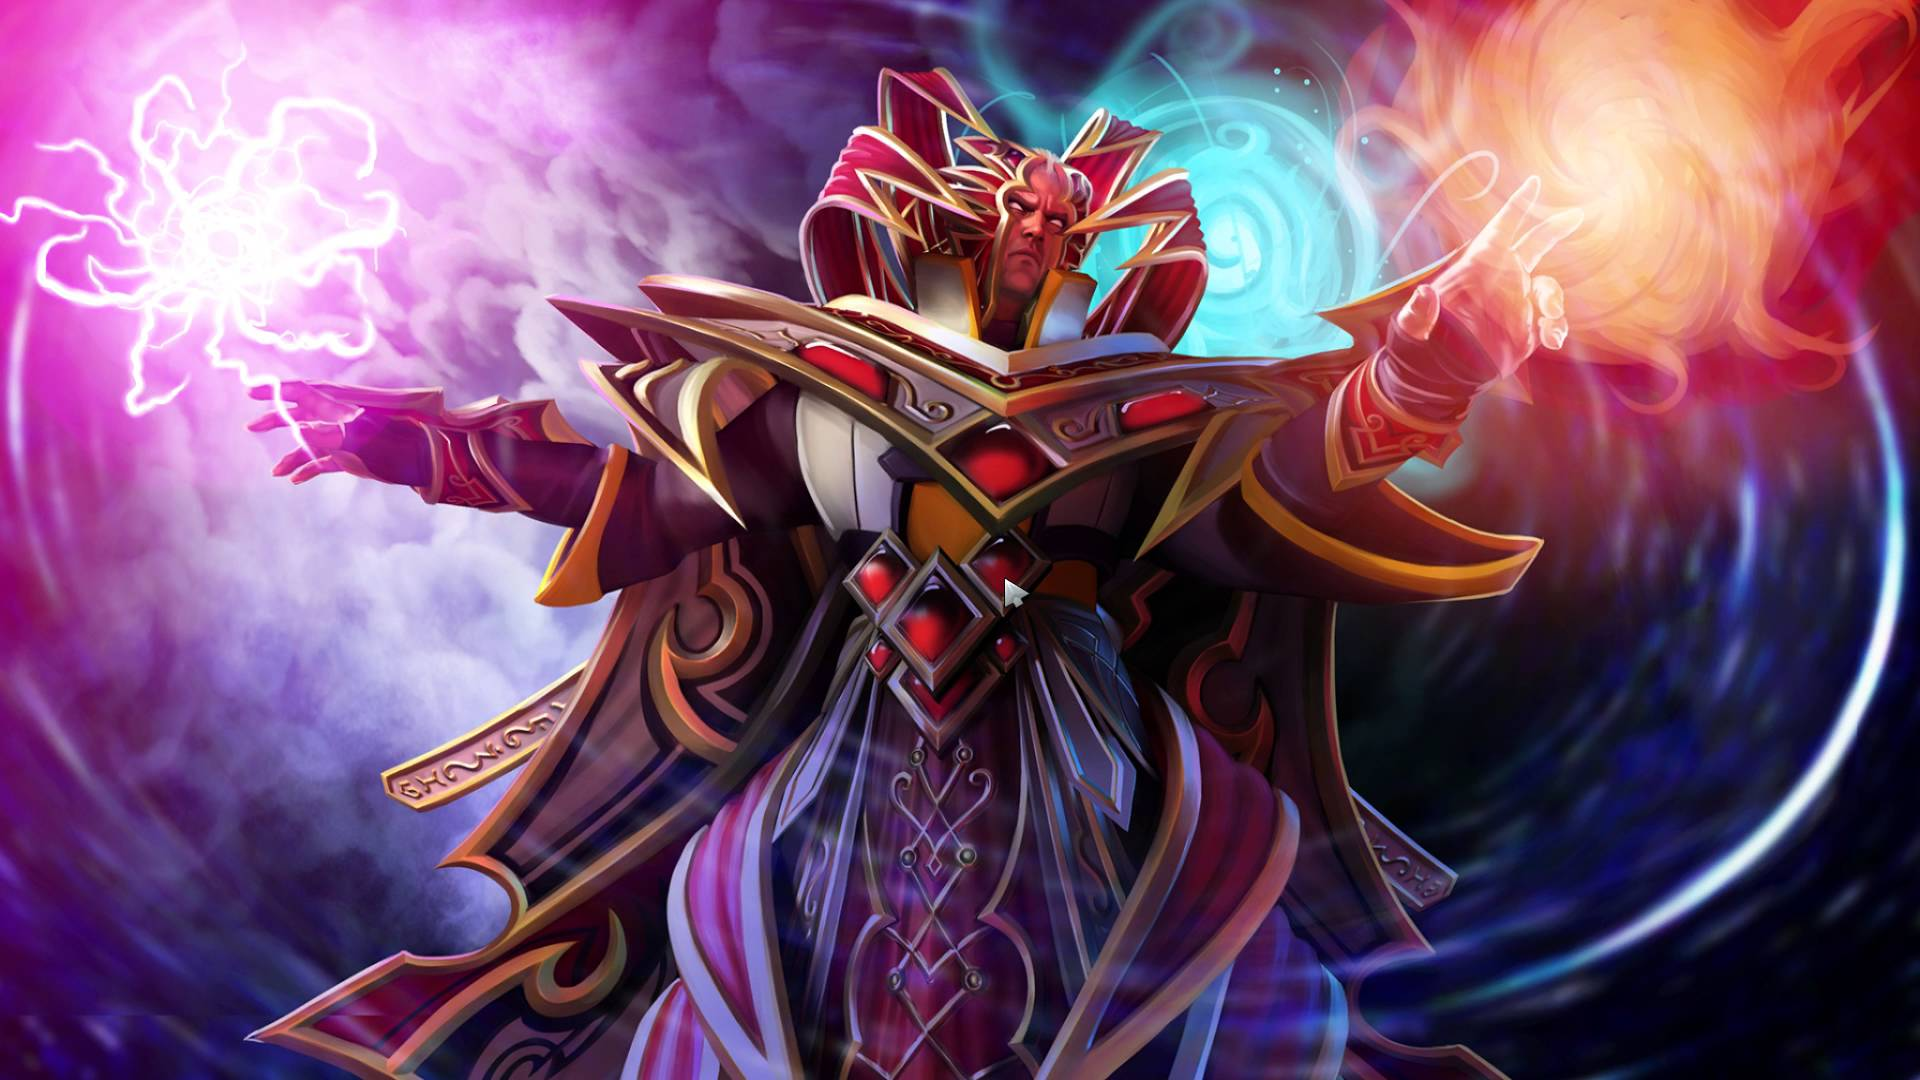 Dota 2 Pictures Gallery Invoker Magic Fighter Digital Art